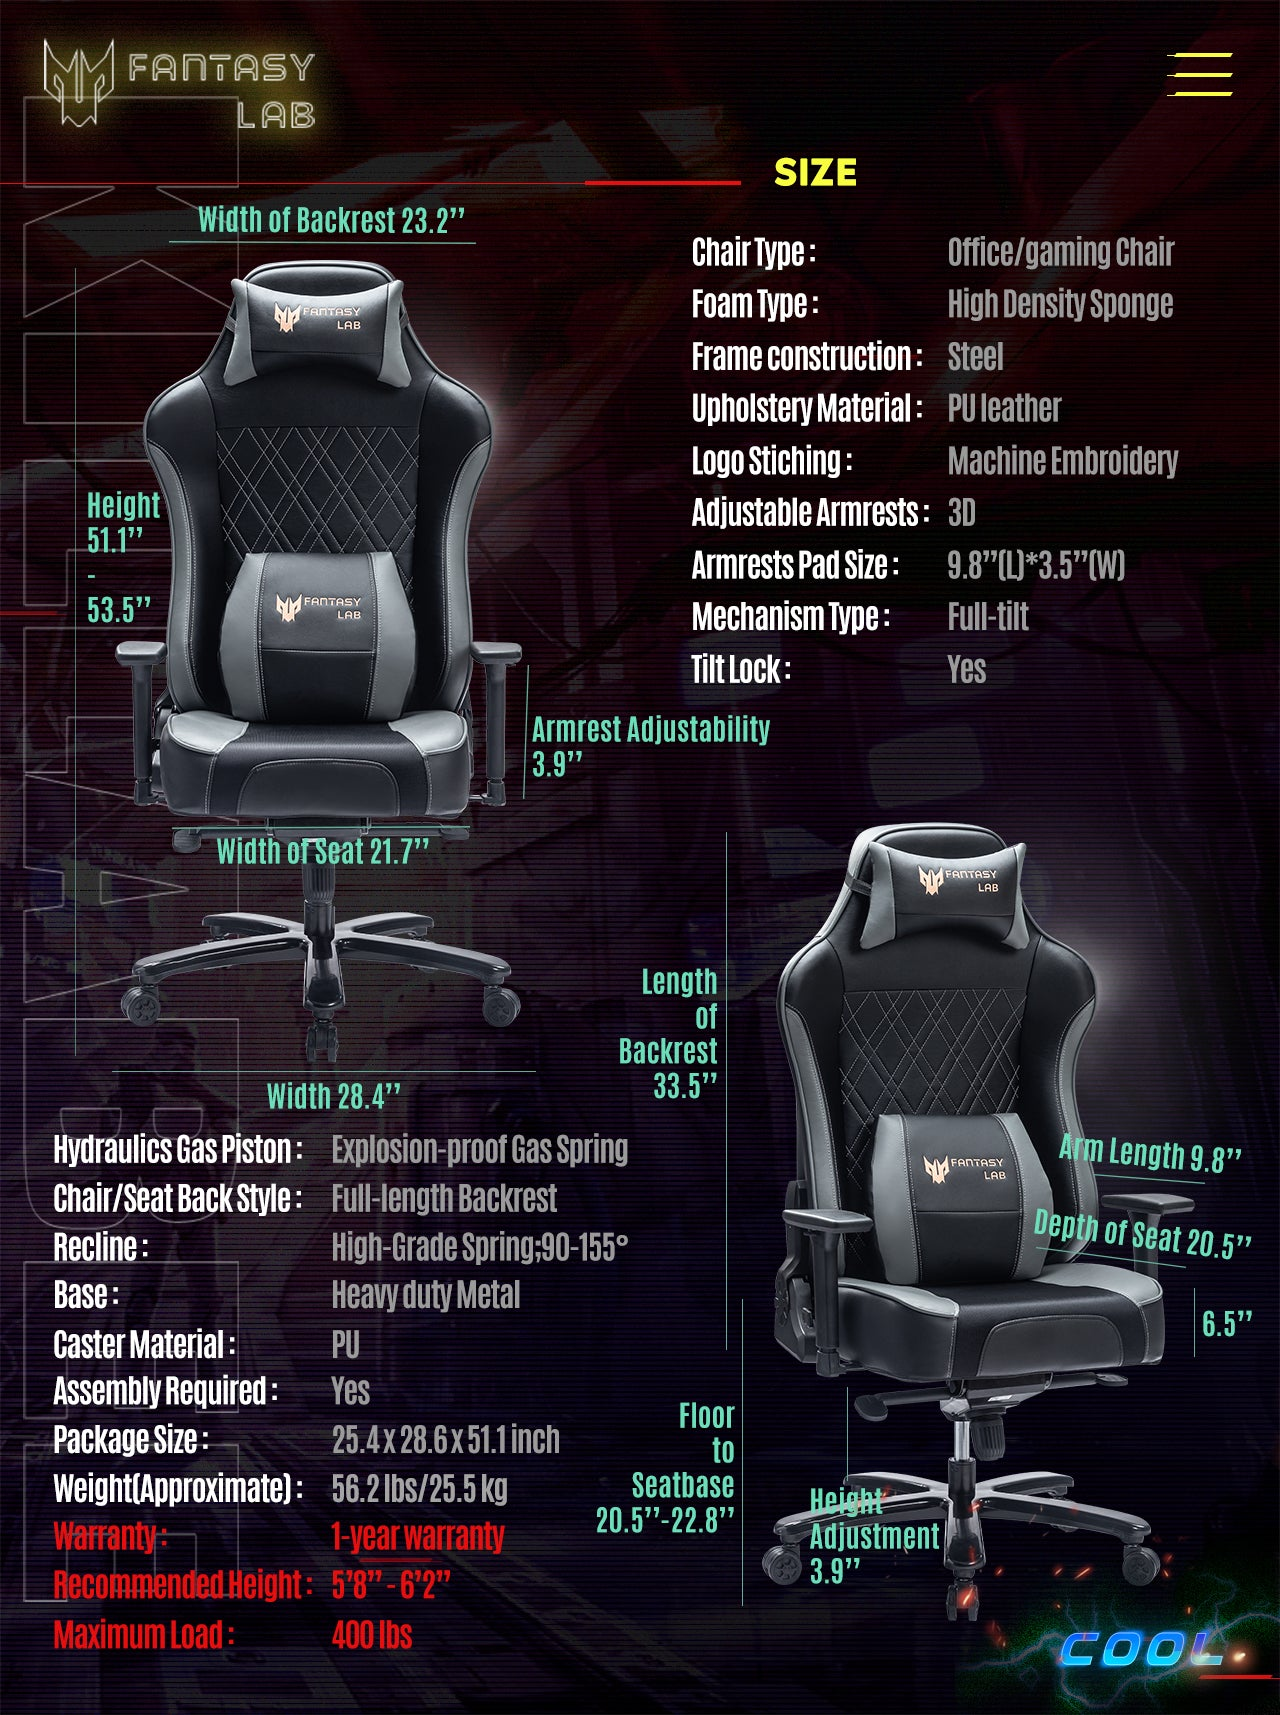 FANTASYLAB Cool Series Racing Style Big and Tall Gray Gaming Chair Specifications